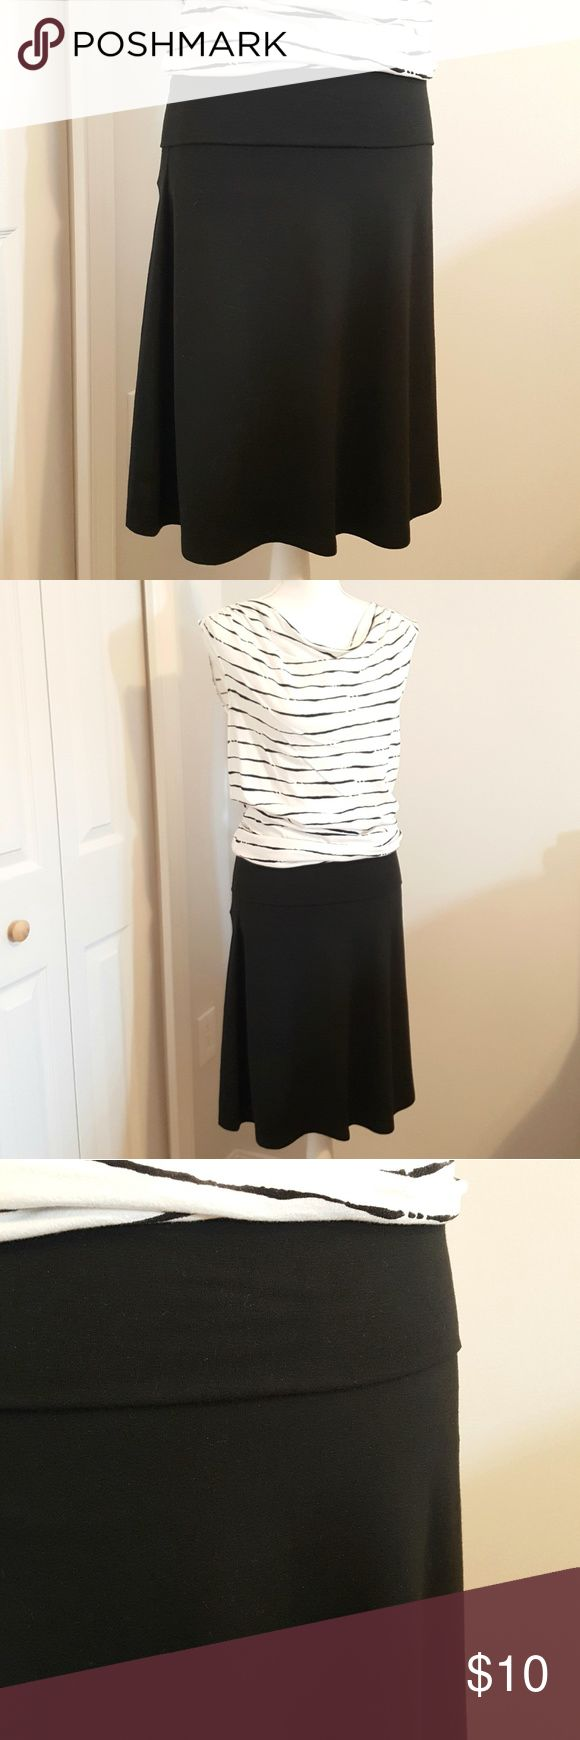 Old Navy Black Jersey Knit Fold Over Skirt - Small Super soft jersey knit skirt with fold over waistband. Great for travel! Material is 47% Polyester, 47% Rayon, 6% Spandex. Old Navy Skirts